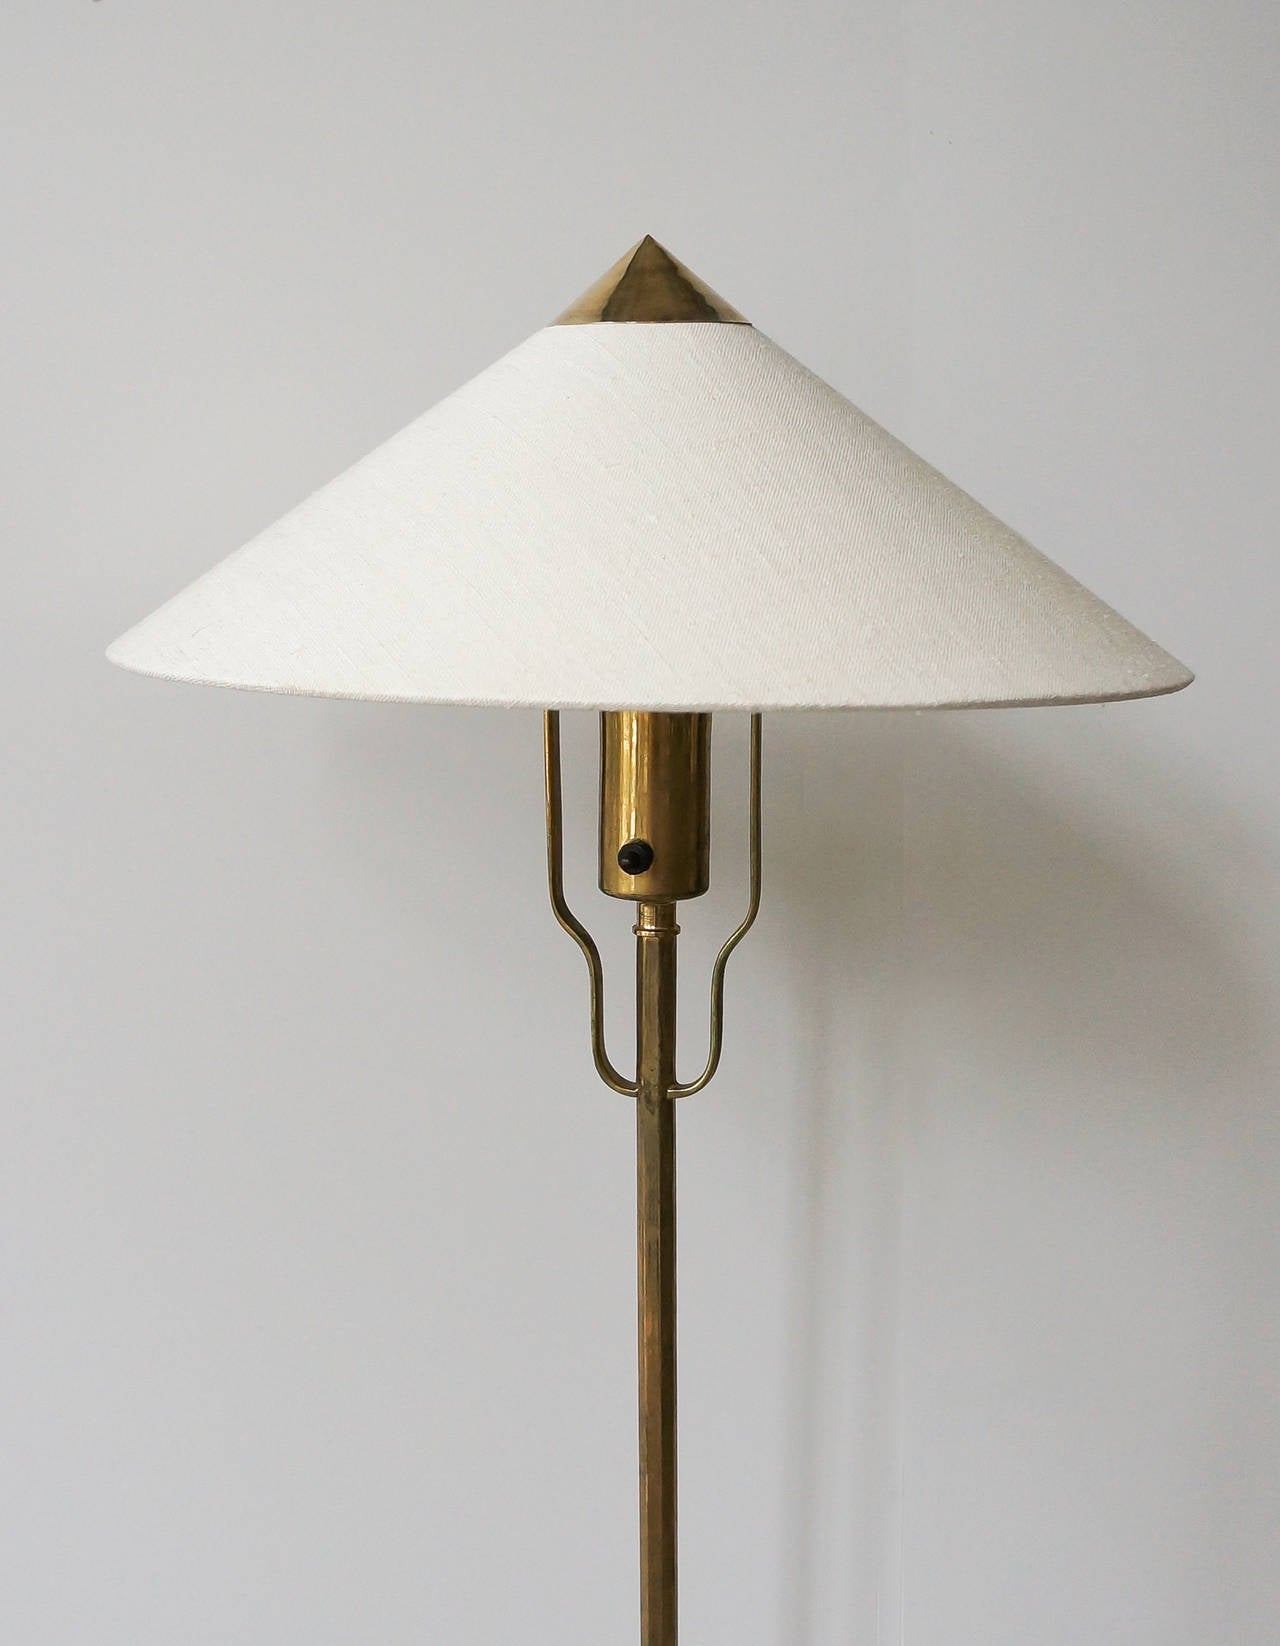 Finnish Paavo Tynell Floor Lamp, Model 5762 Manufactured by Taito Oy, Finland For Sale